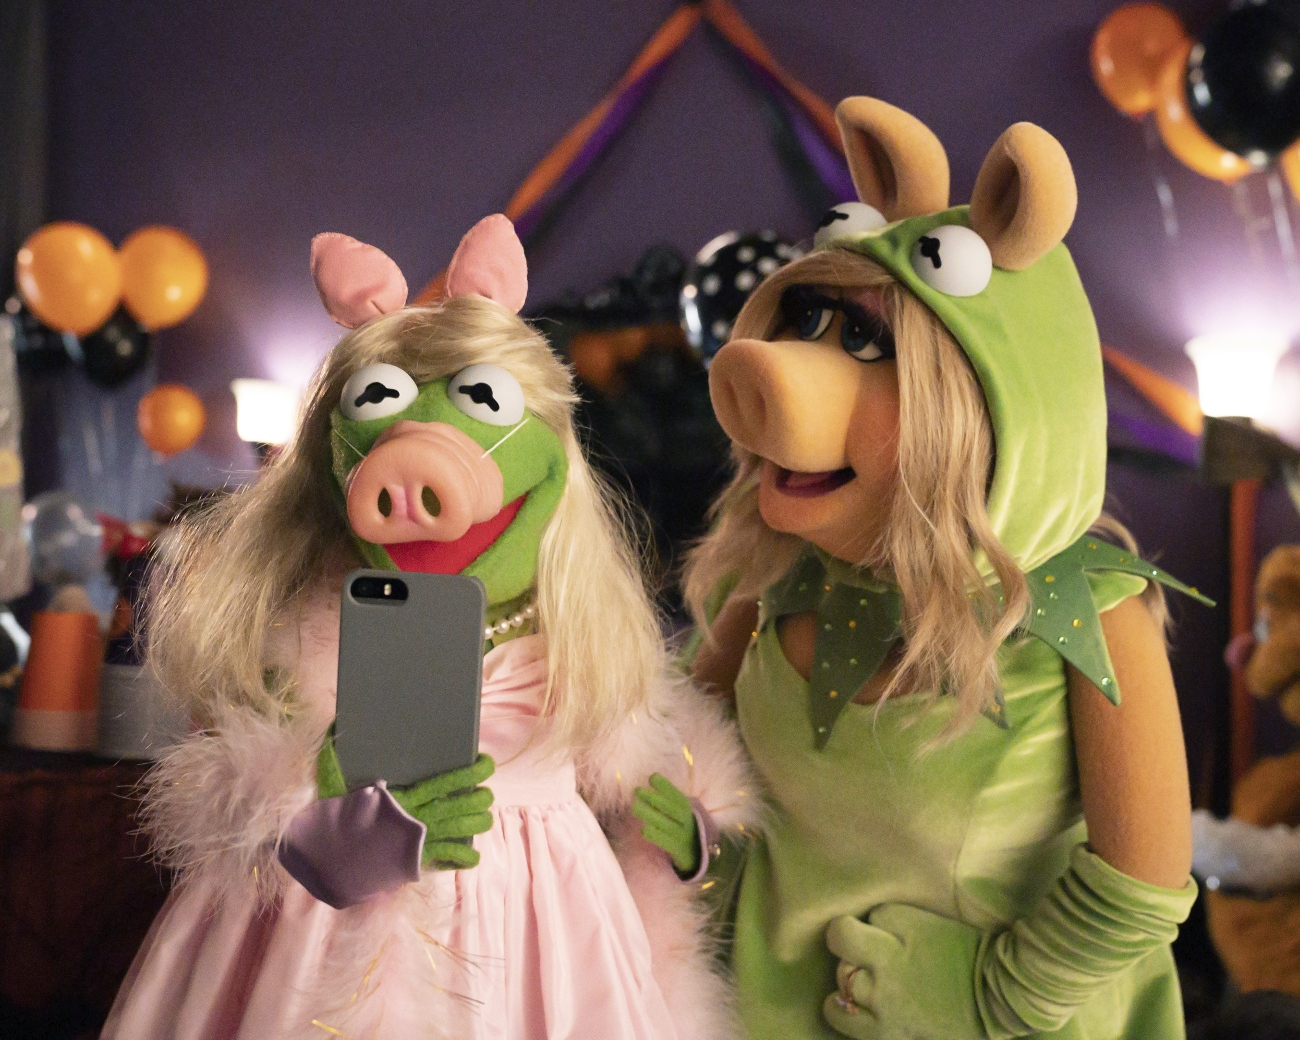 Kermit the frog and Miss Piggy in 'Muppets Haunted Mansion'